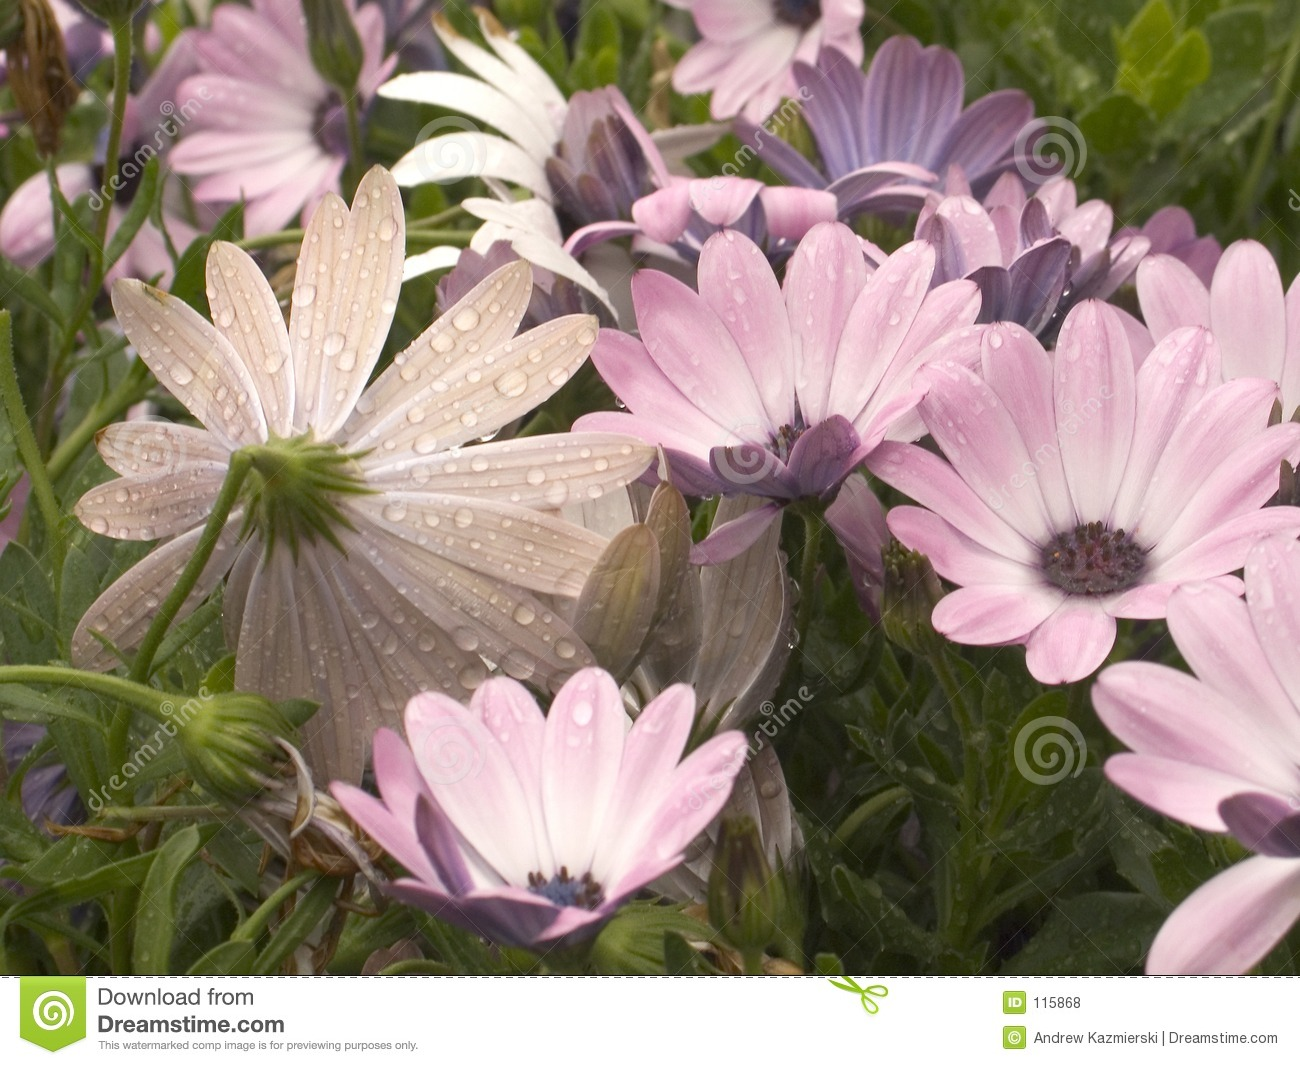 Download Rainy Daisies stock photo. Image of purple, dainty, garden - 115868